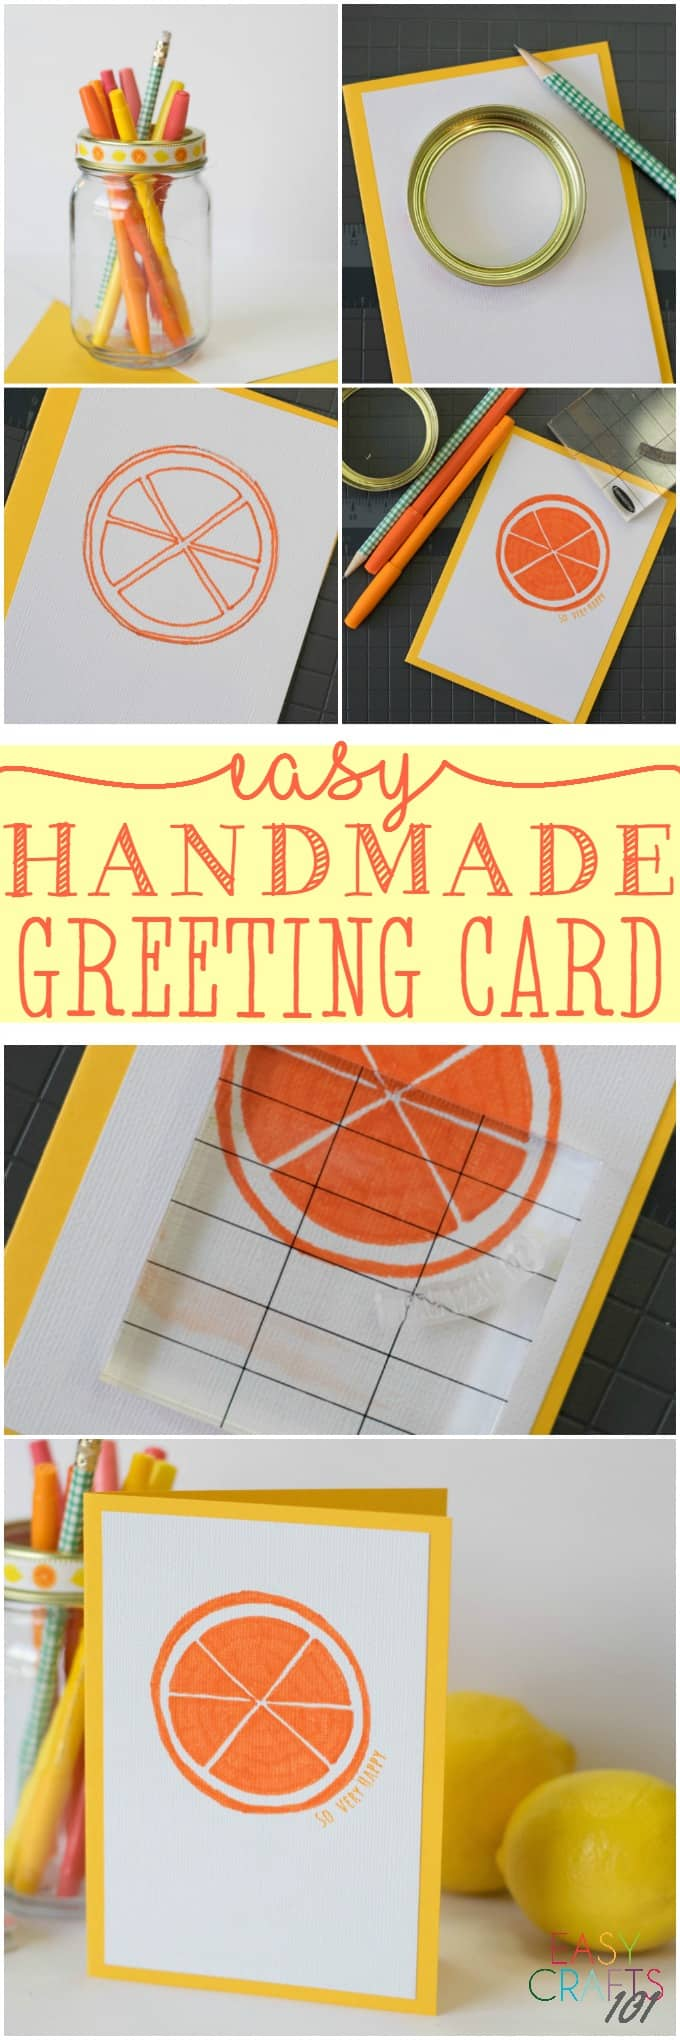 Easy Handmade Greeting Card